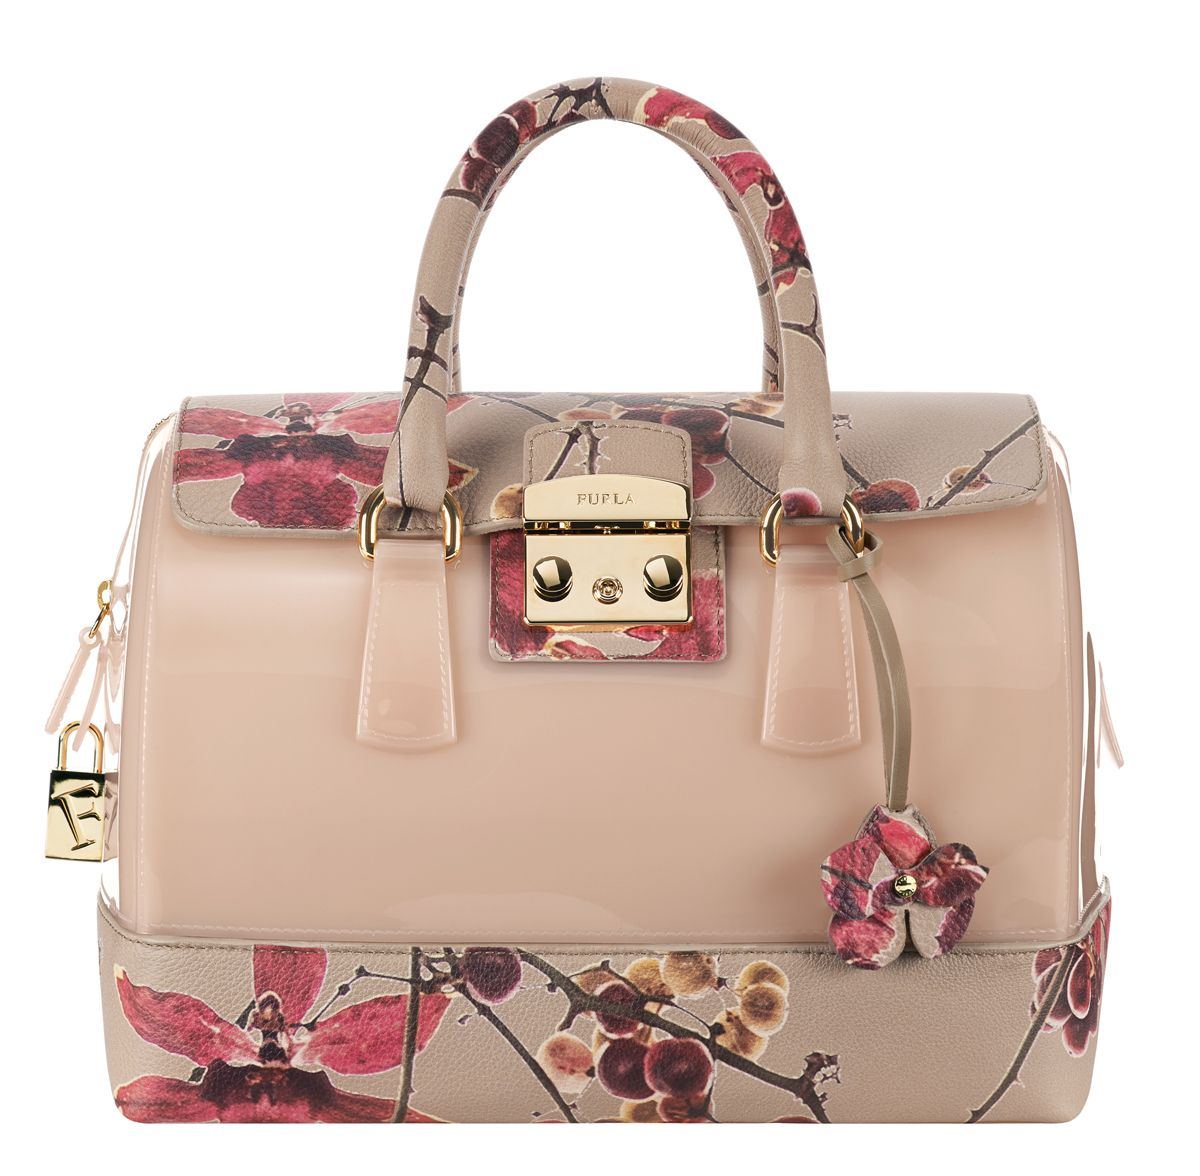 Fashion week Candy Furla bags pictures for girls